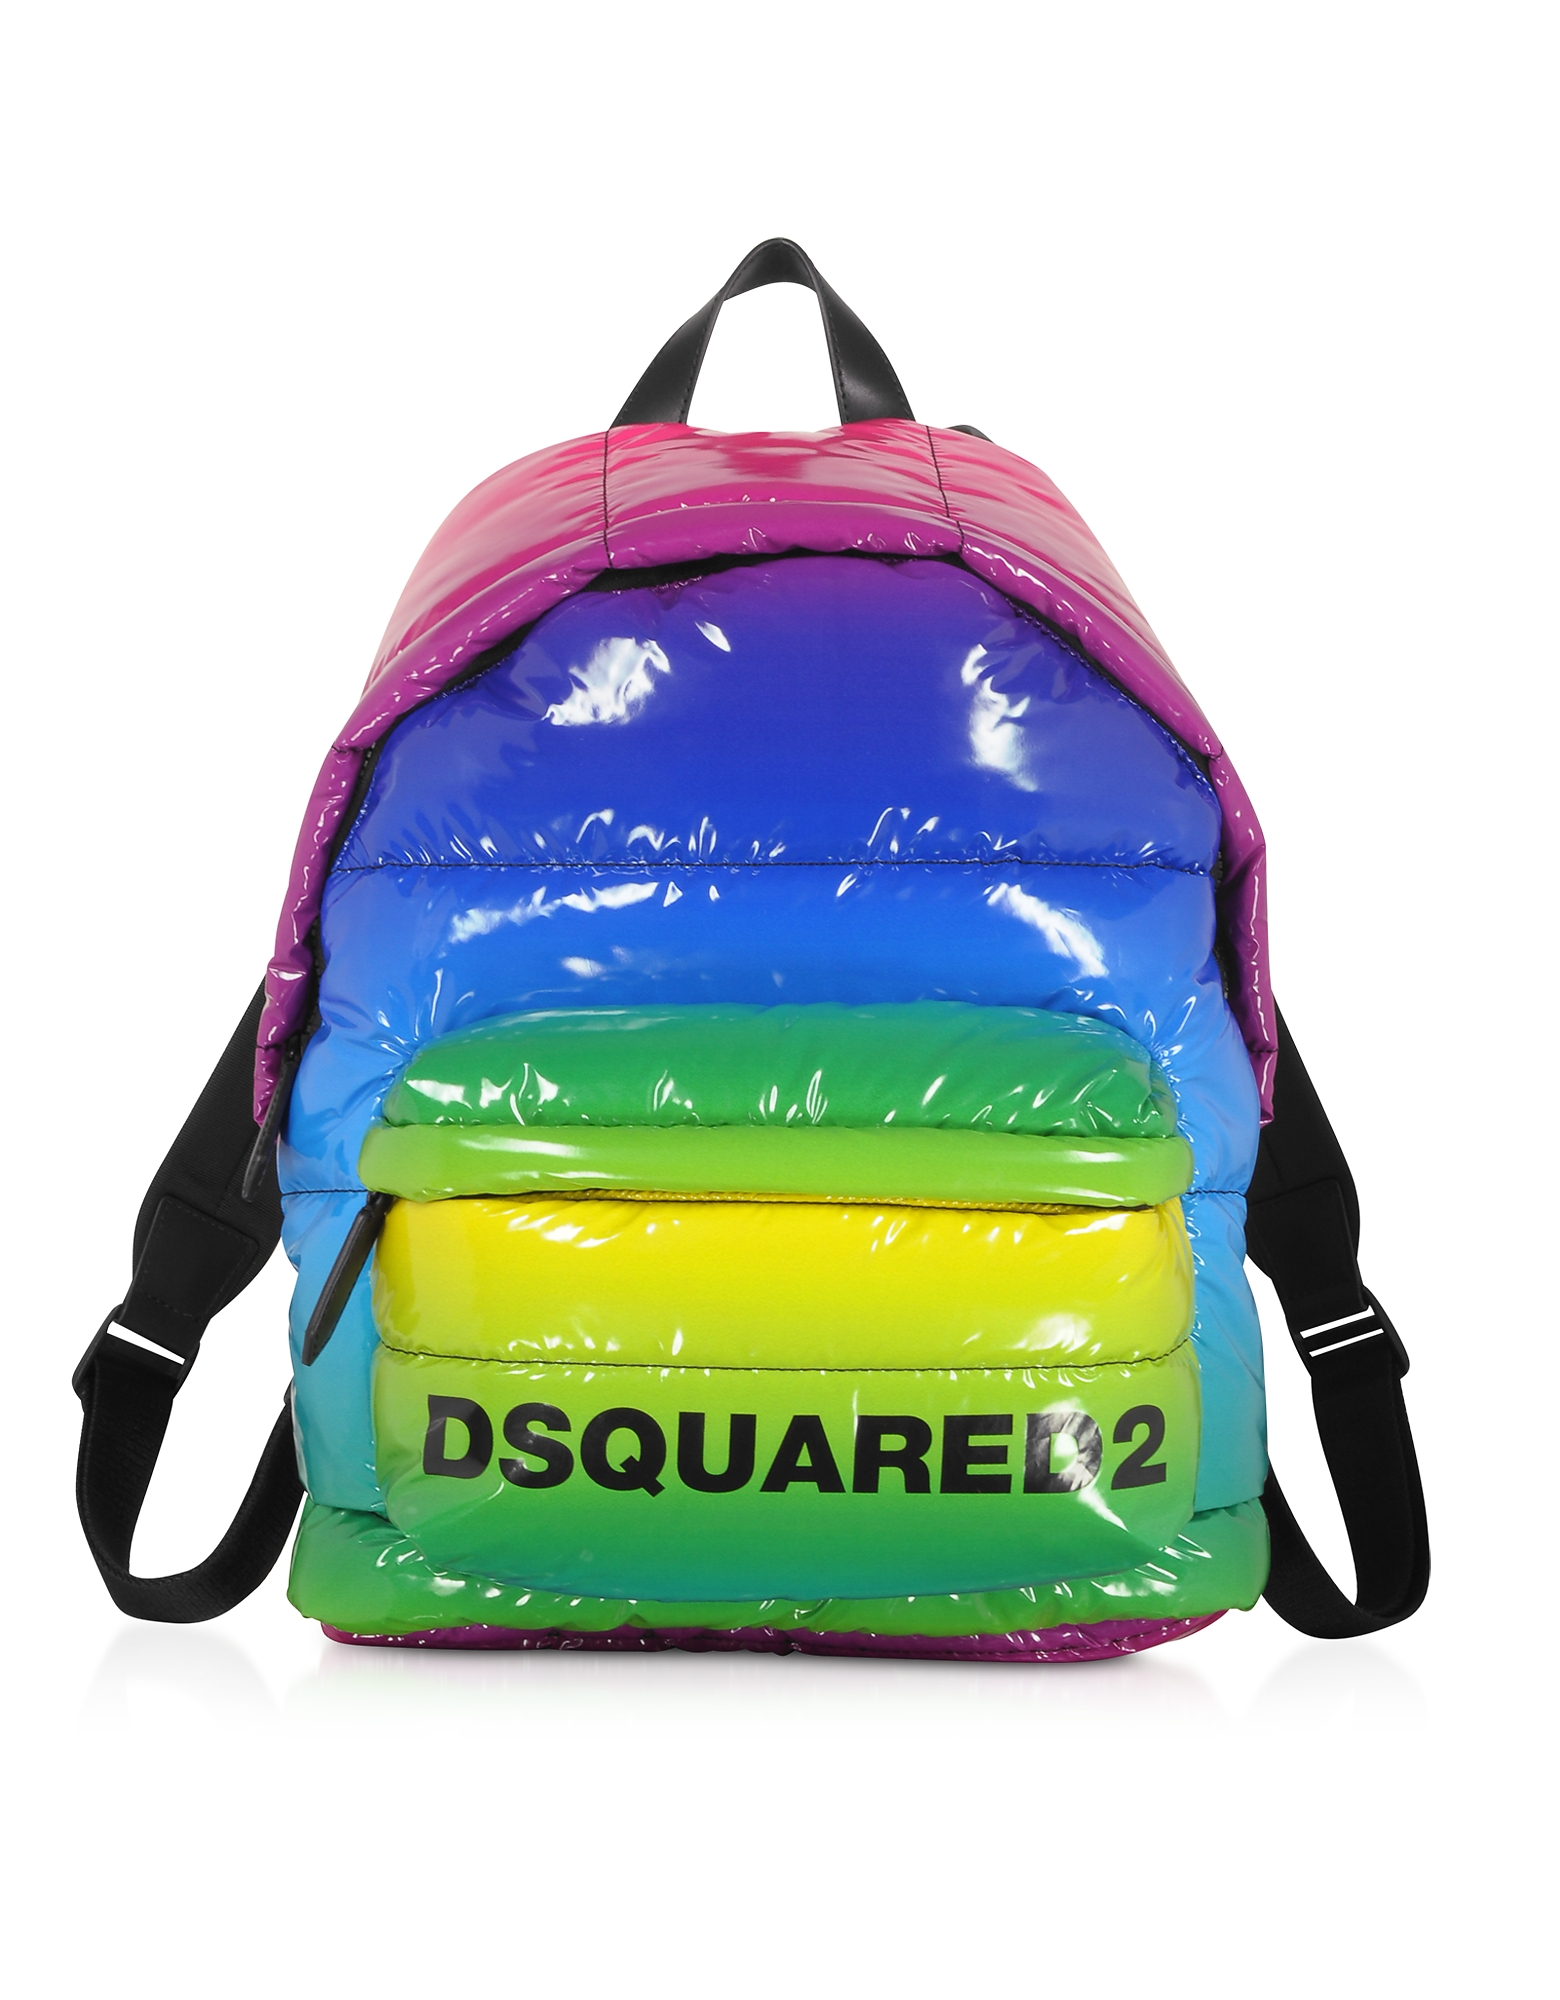 Dsquared2 RAINBOW QUILTED VINYL BACKPACK